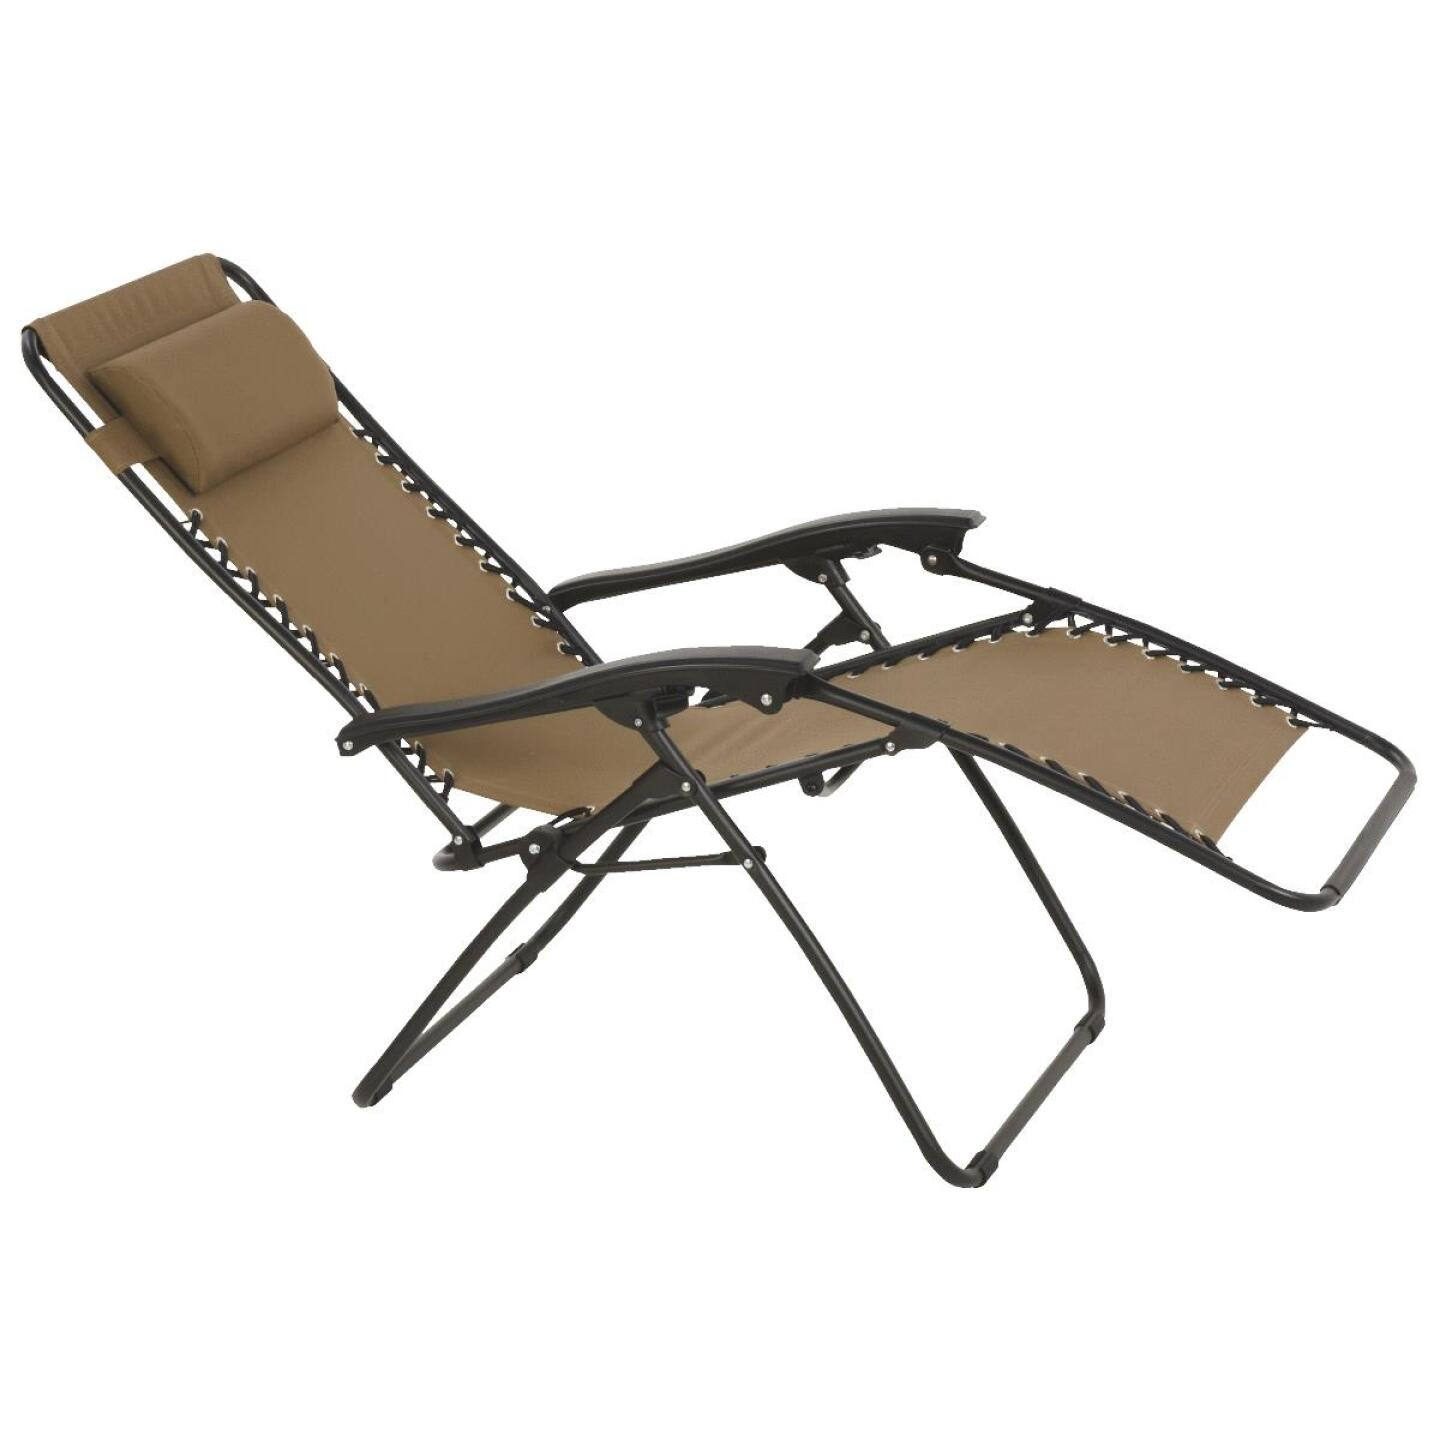 Outdoor Expressions Zero Gravity Relaxer Tan Convertible Lounge Chair Image 10